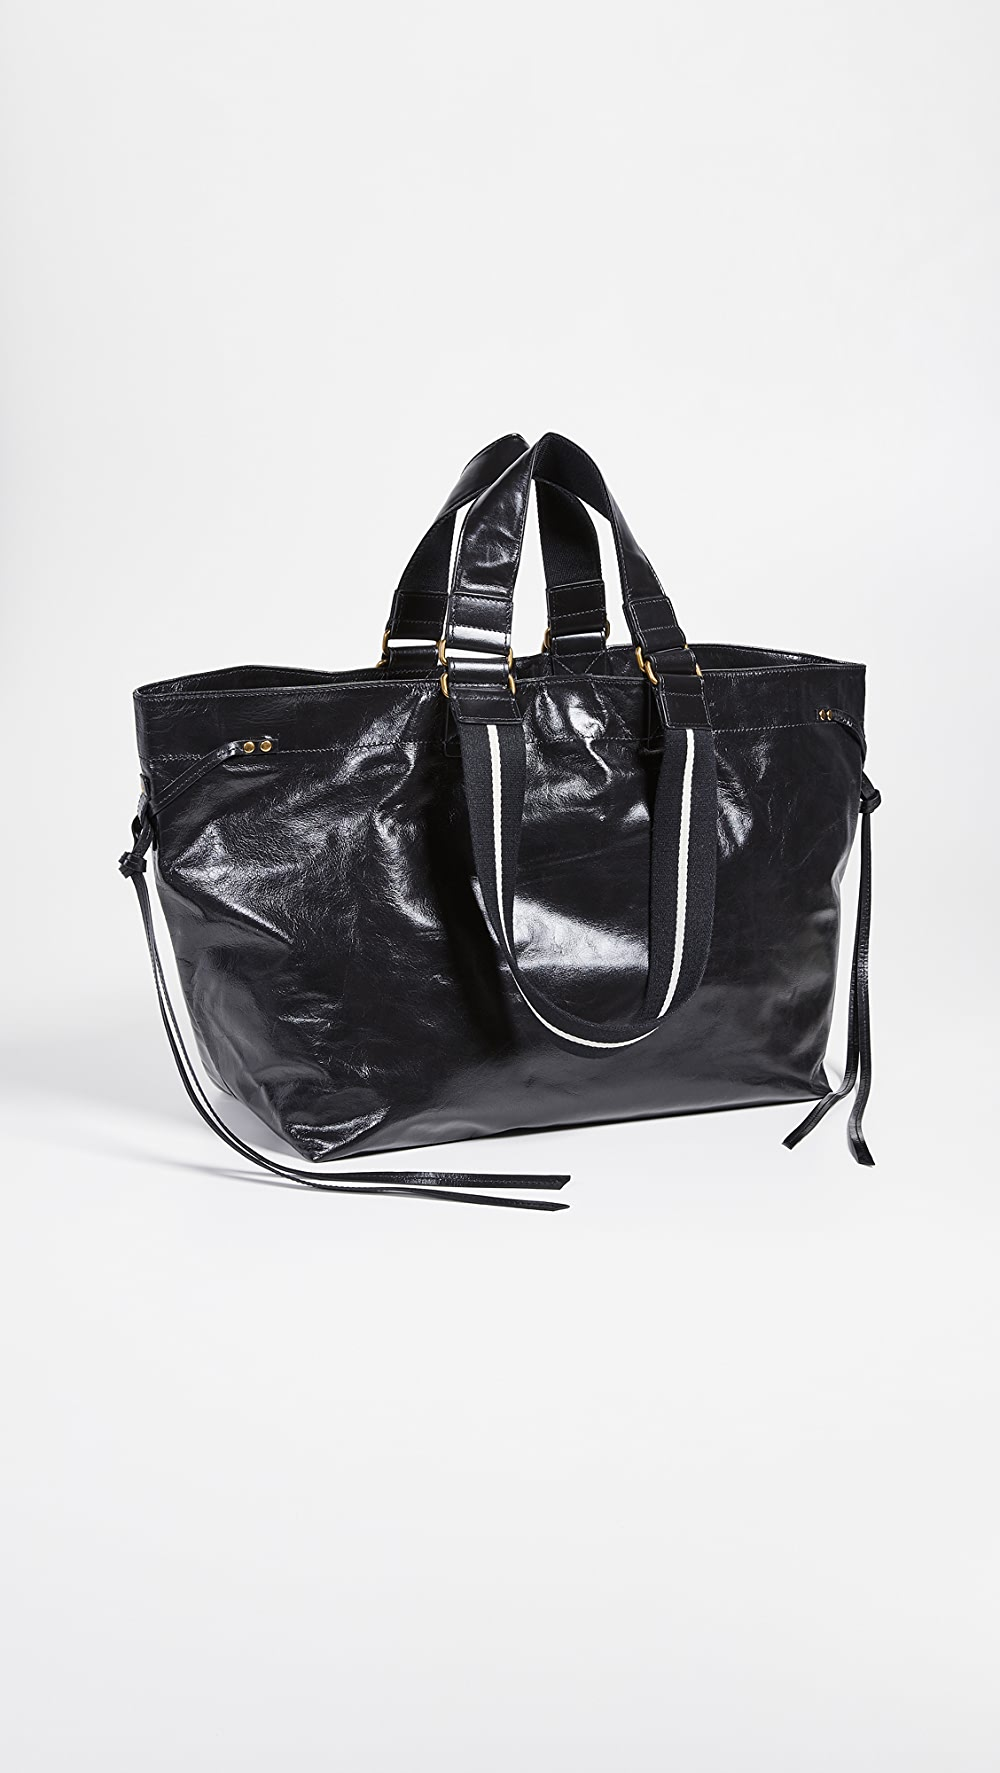 Strong-Willed Isabel Marant - Wardy New Bag Easy To Lubricate